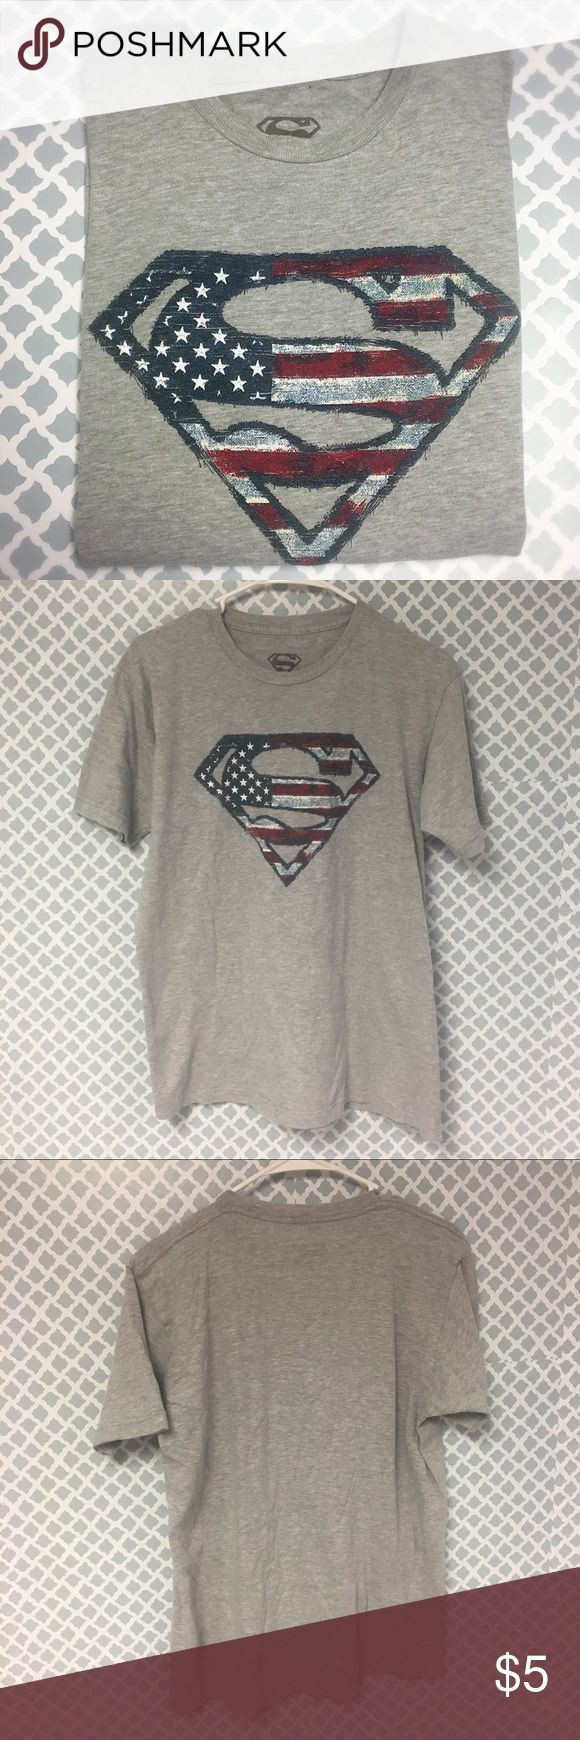 Superman American Flag T Shirt Description: American Flag red white and blue superman t shirt men's size large  🔘Condition: Good – A couple of pin sized holes and some slight fading  🔘Material: 100% cotton  🔘Measurements:       Pit to Pit – 21 inches       Shoulder to Hem – 27 inches    ⭐️ 15% Off All Bundles! 🛍    💞Thanks for stopping by! 😘 Inventory: B Superman Shirts Tees - Short Sleeve